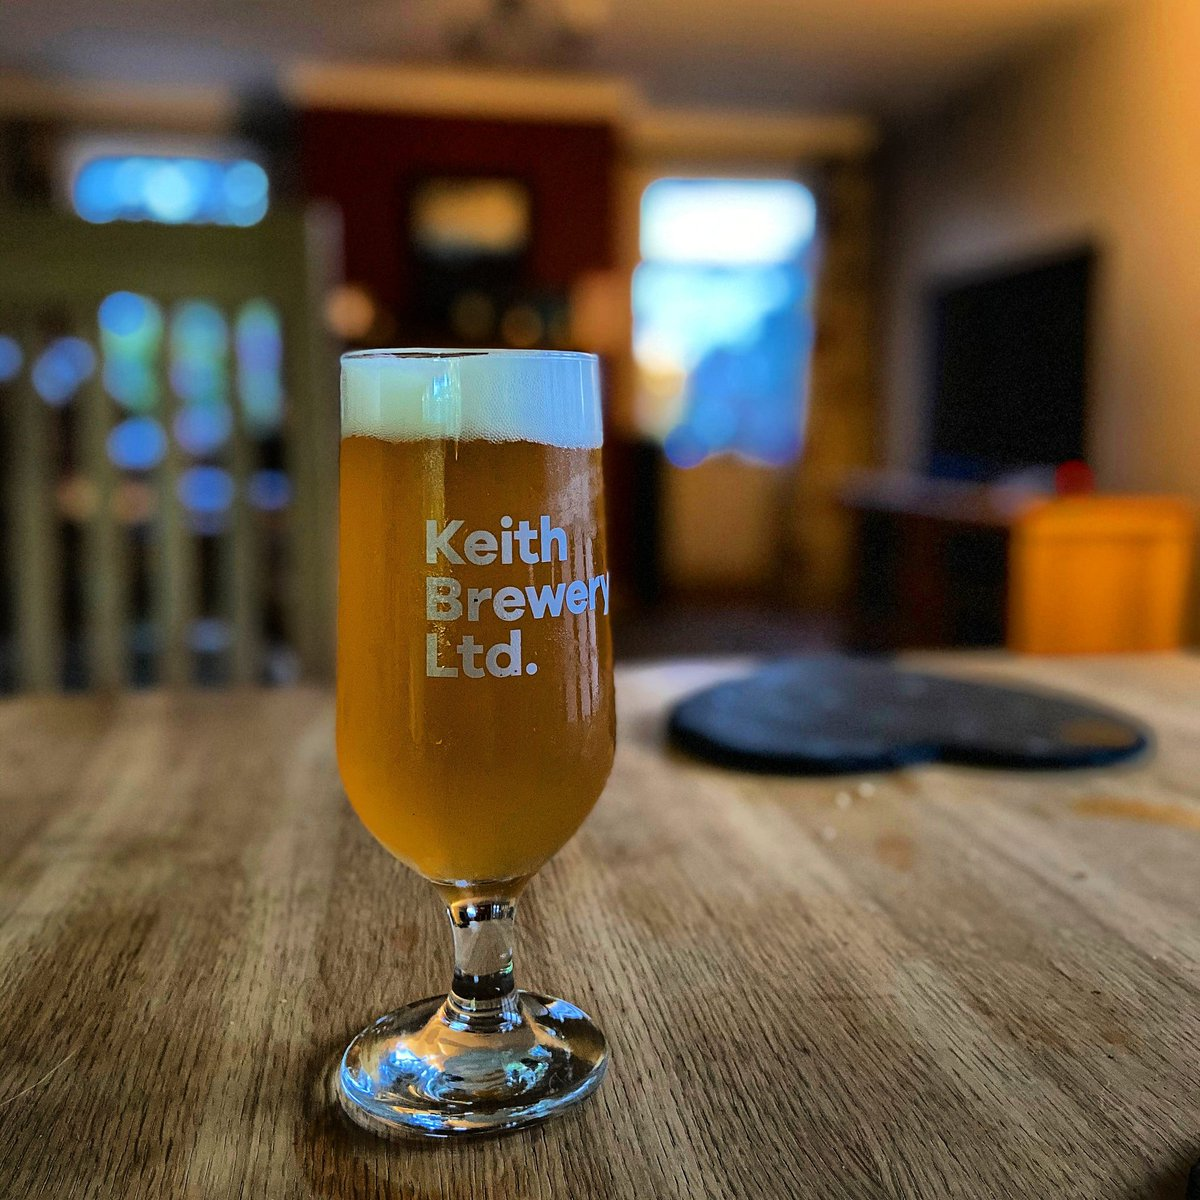 Our shop has some great glassware alongside our delicious range of craft ales and beers #FridayFeeling #craftbeer